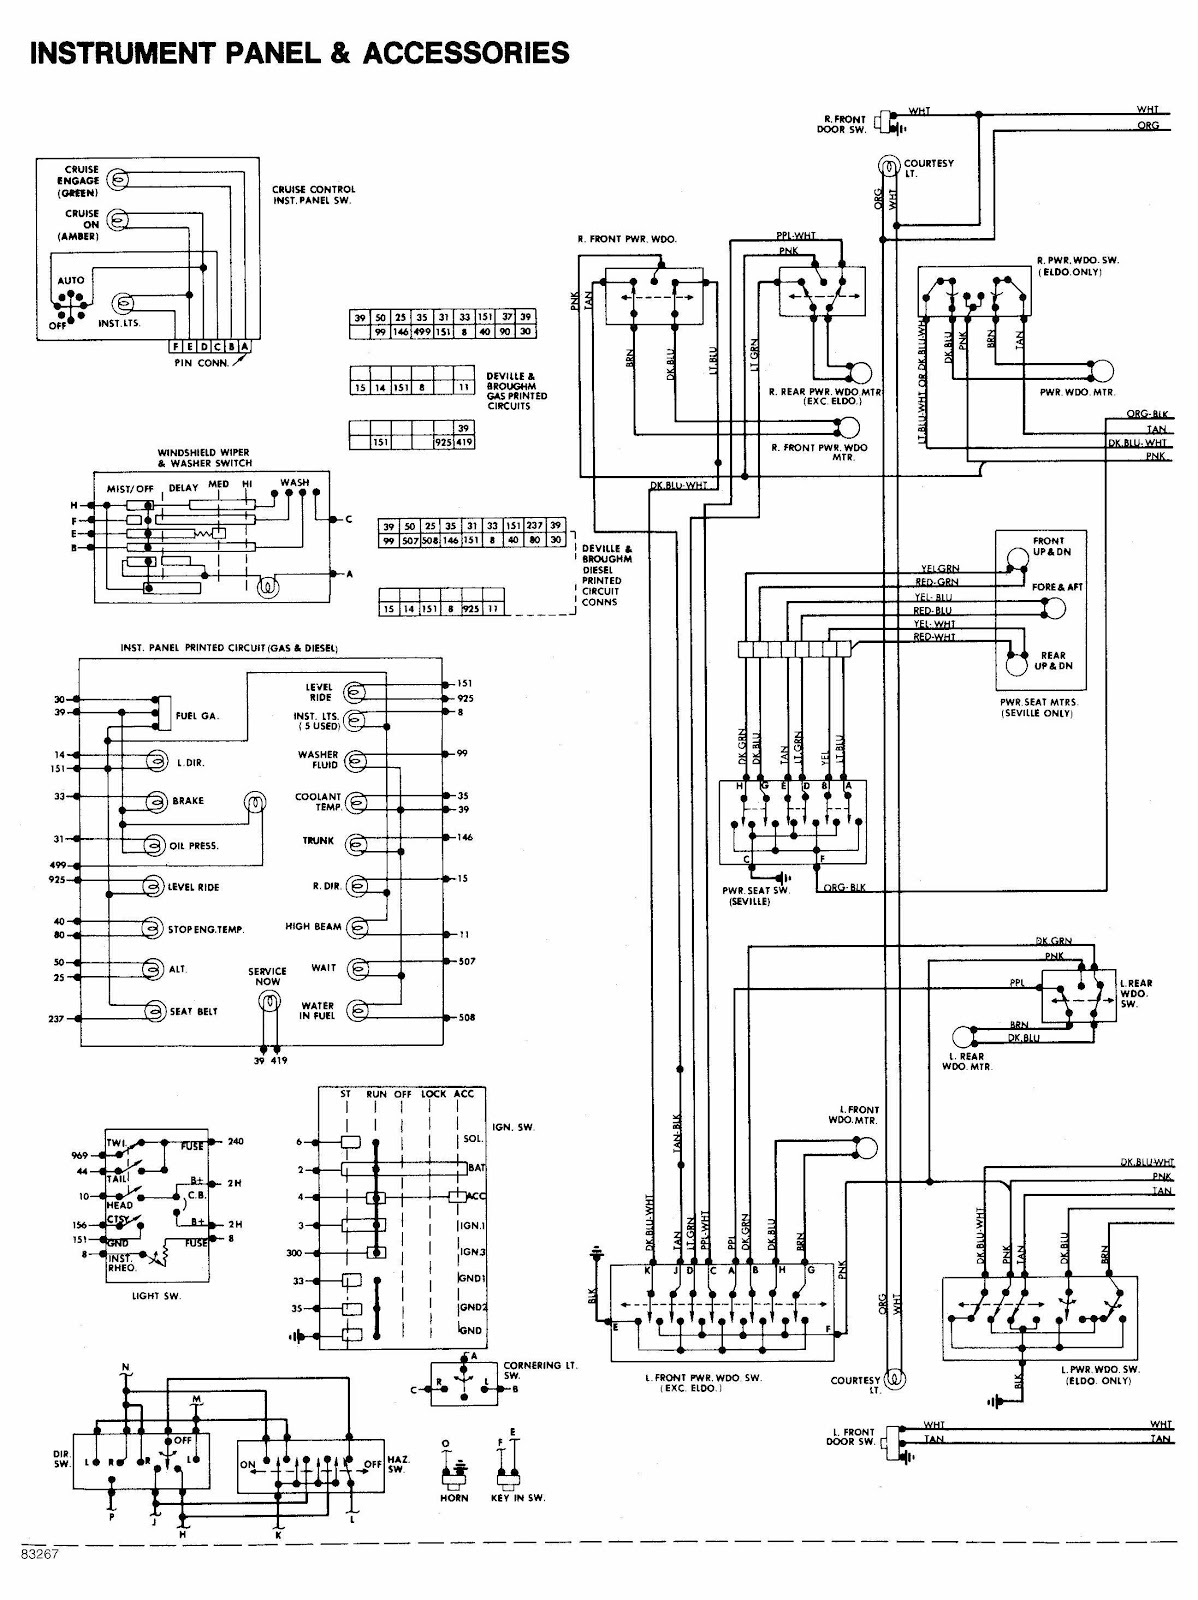 medium resolution of cadillac de ville 1984 instrument panel and accessories 1962 cadillac wiring 1962 cadillac wiring